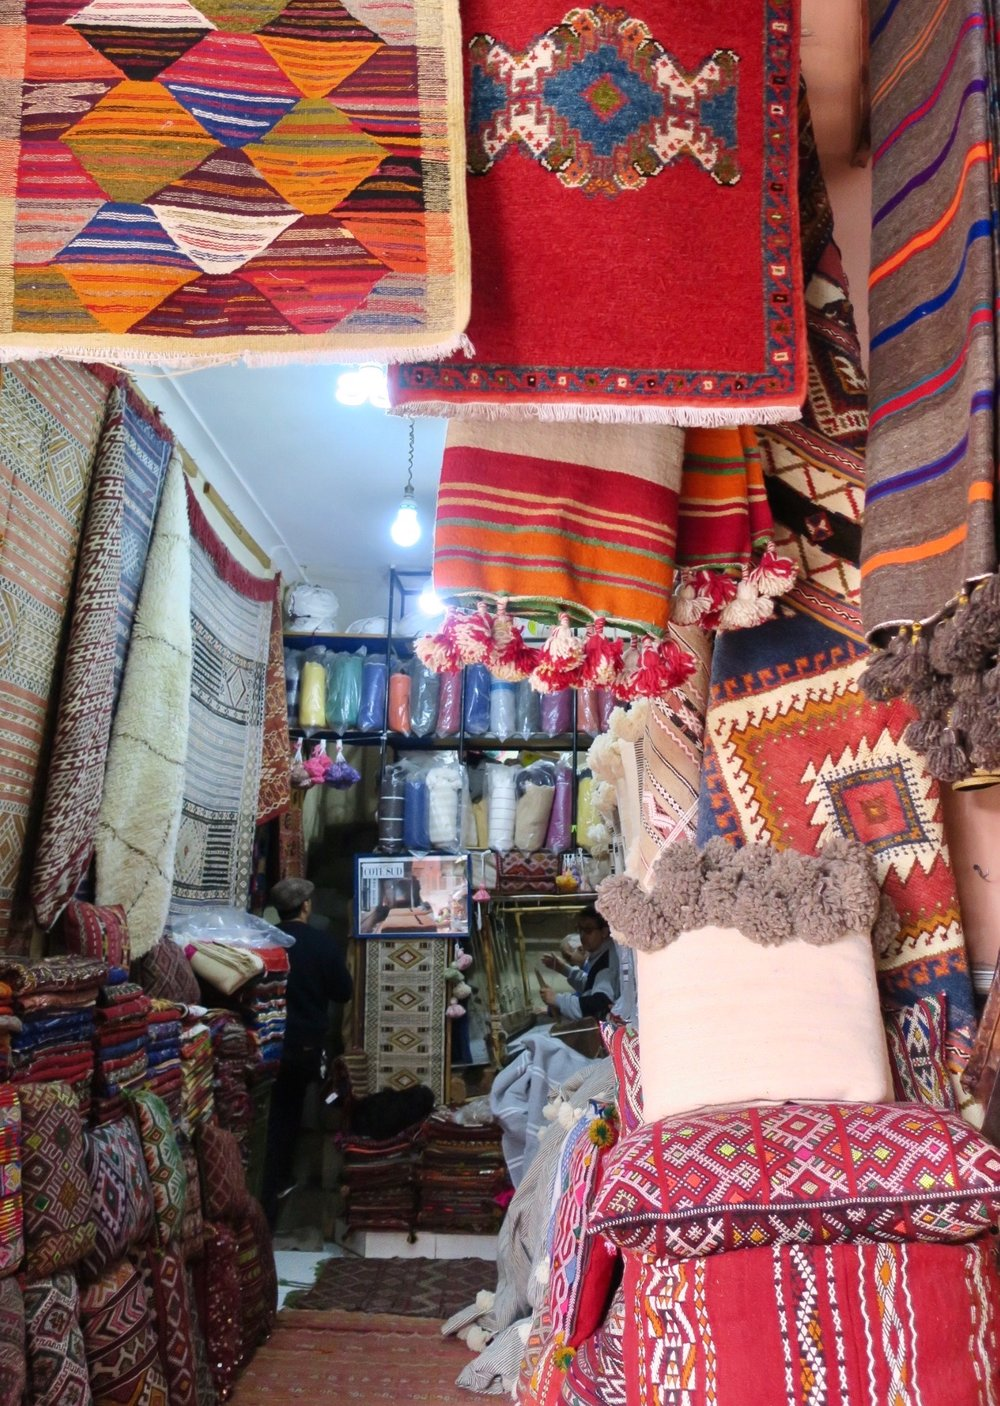 THE GROWN UP EDIT - Bazar Souk Marrakech